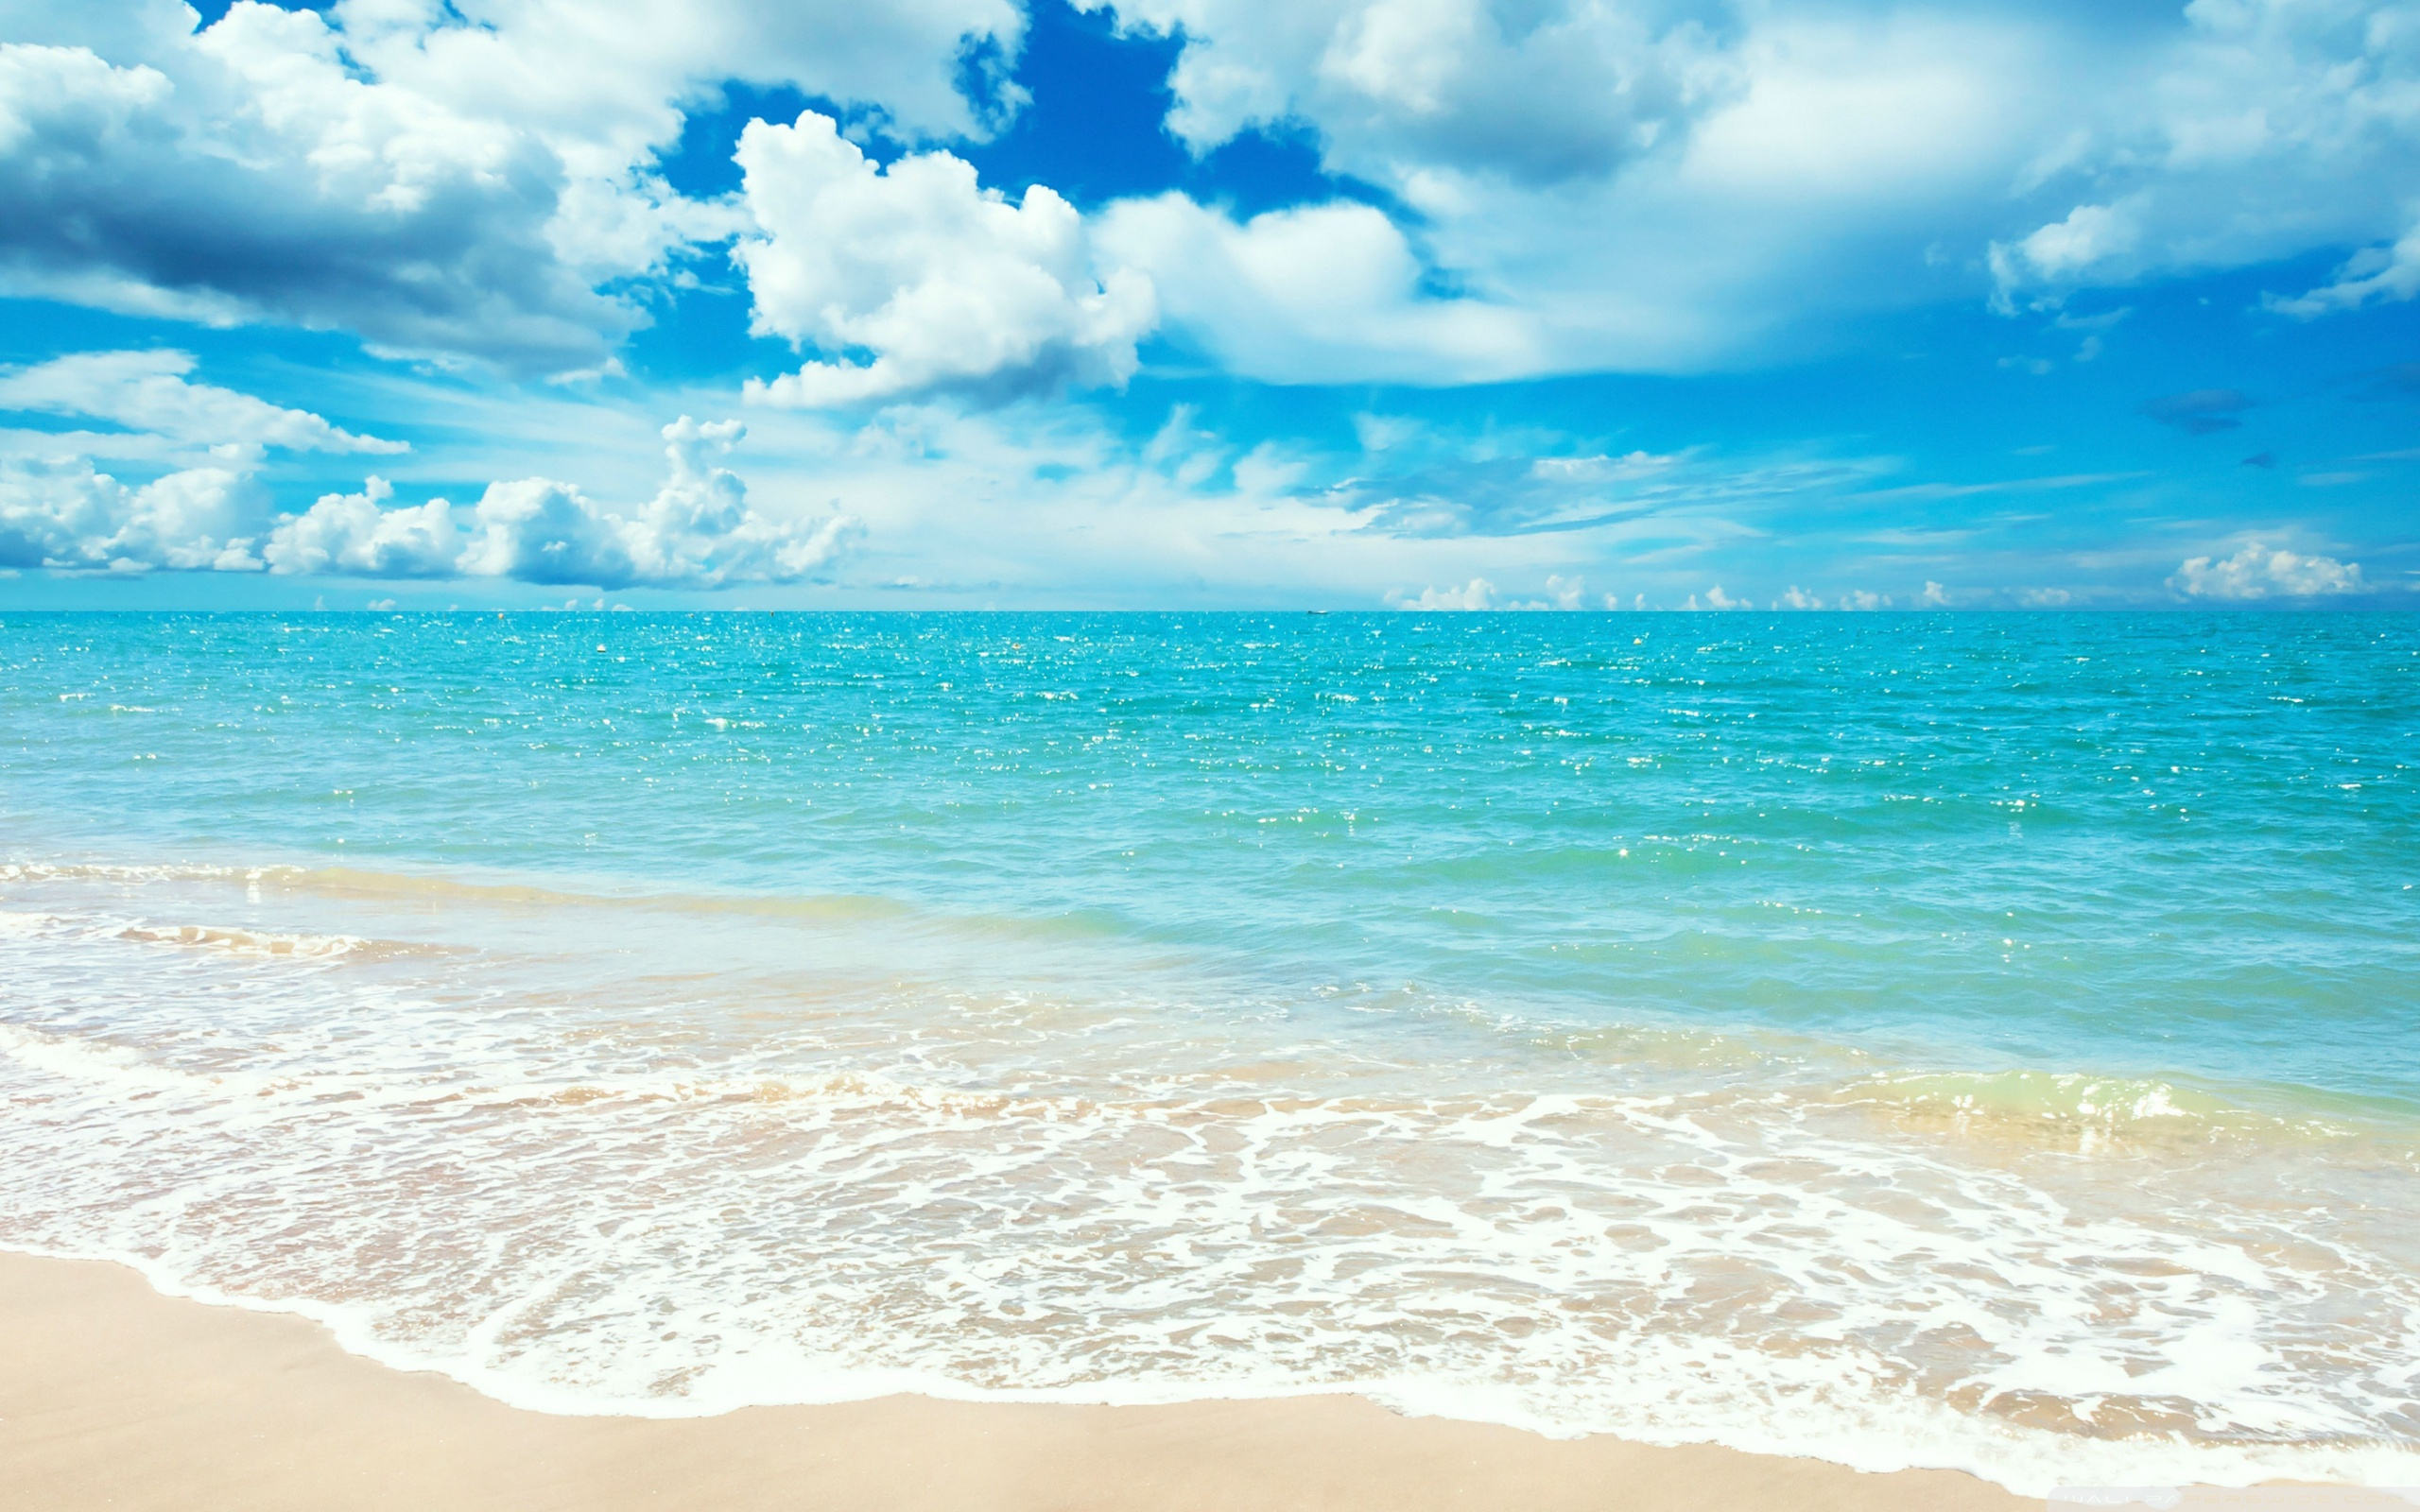 Beach Pictures Hd Wallpapers: 45 Beach Wallpaper For Mobile And Desktop In Full HD For